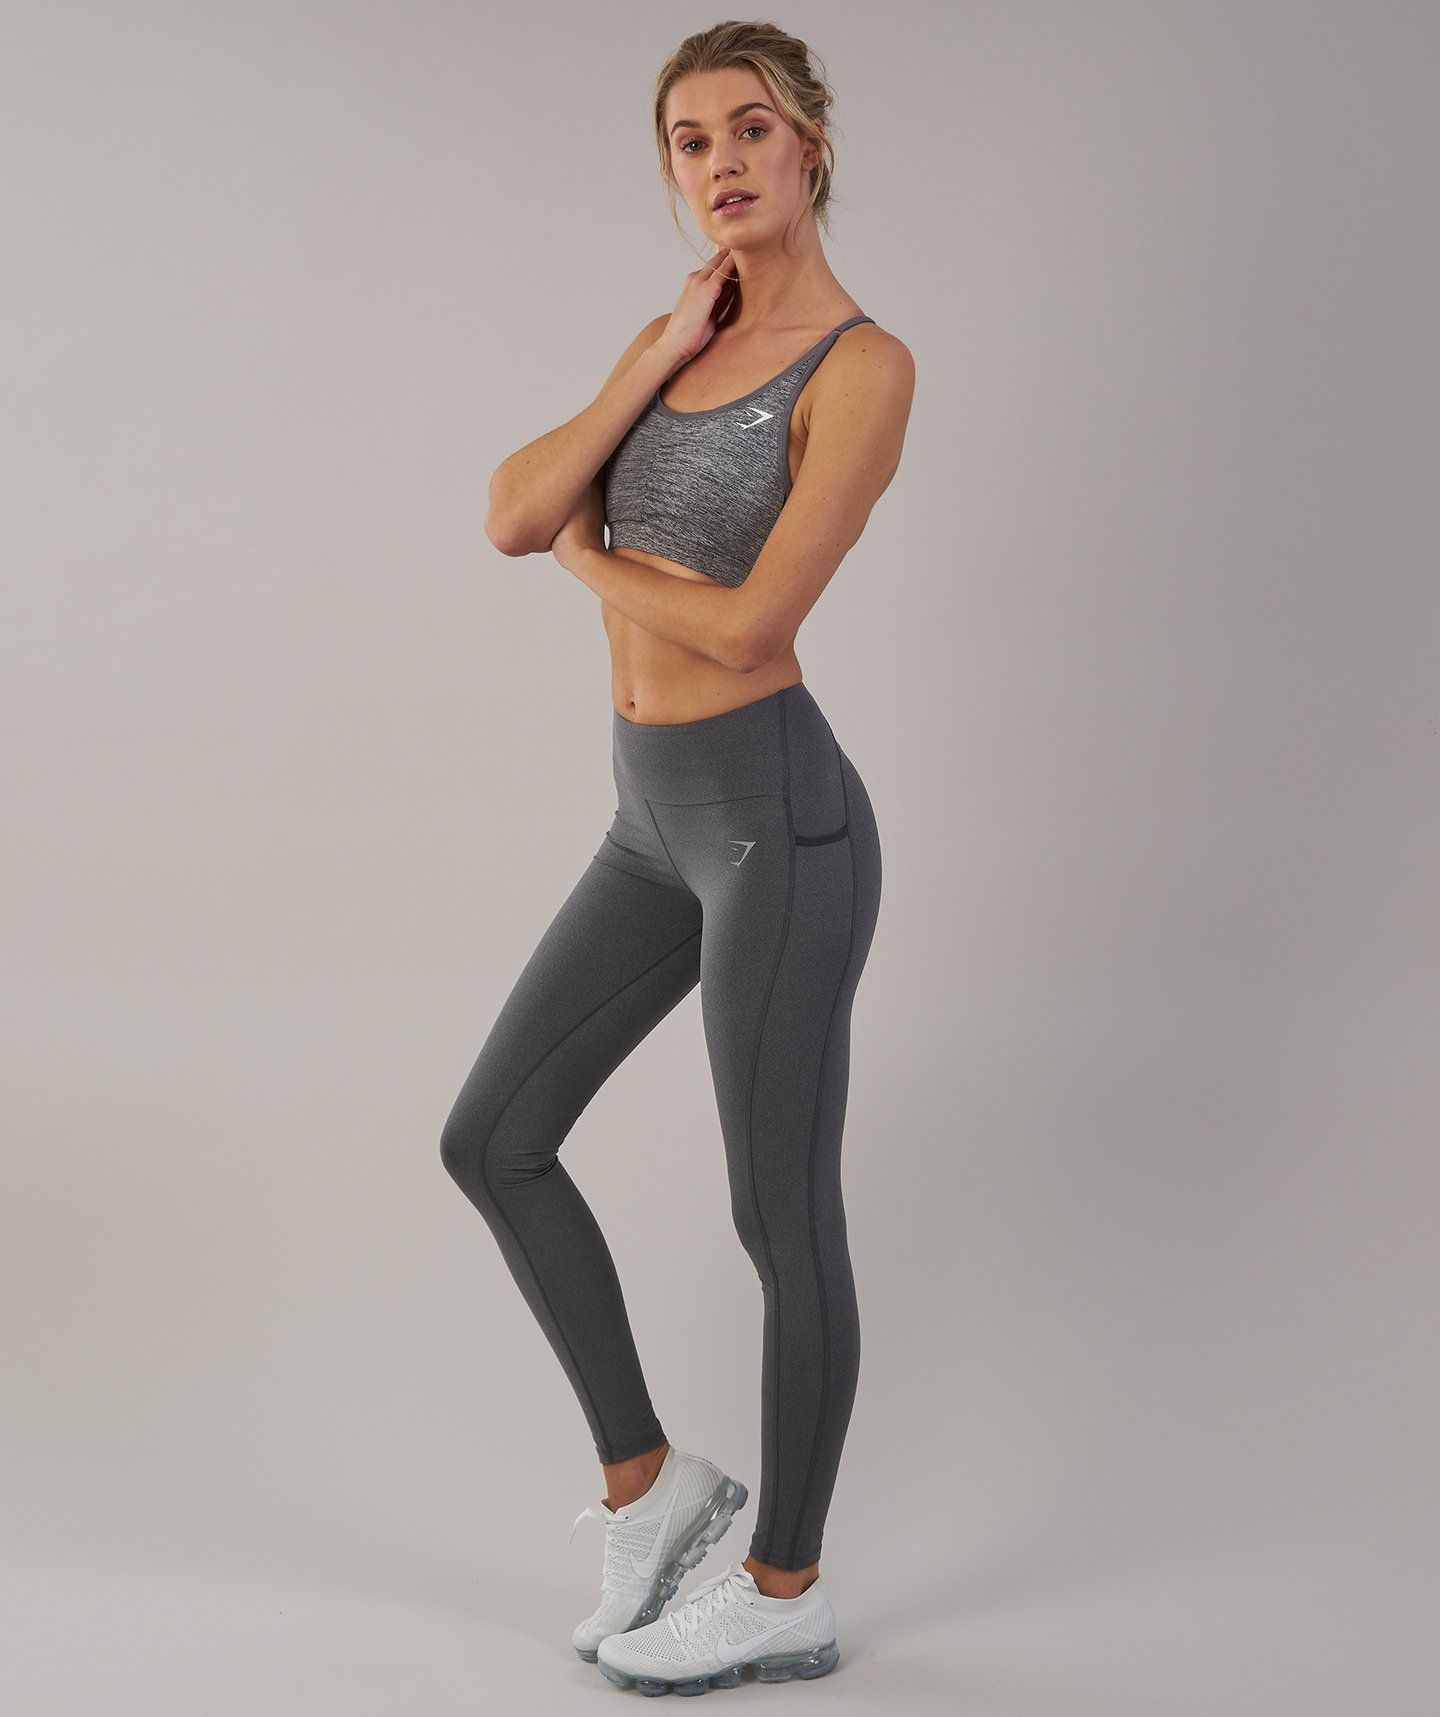 a67df7784d095 Gymshark Aspire Leggings - Charcoal Marl 4